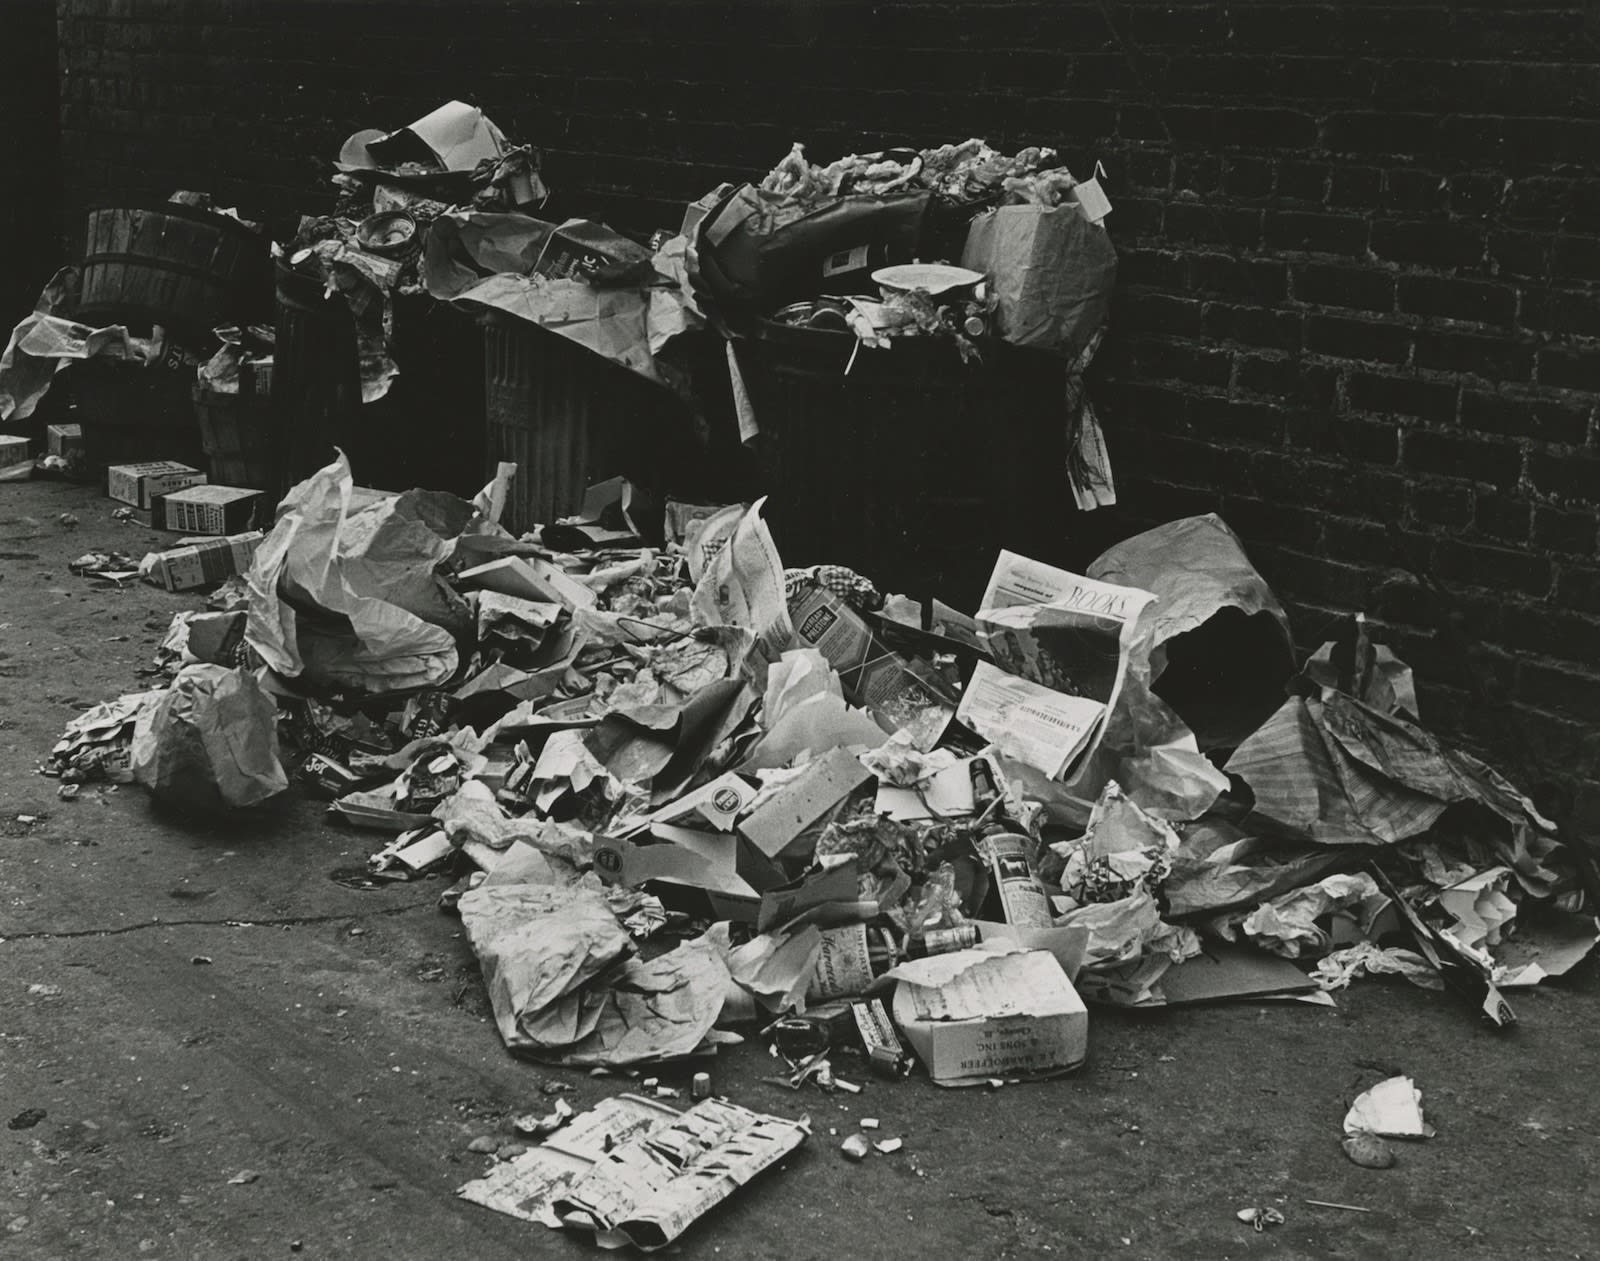 Marvin E. Newman, Garbage, Southside, Chicago, 1951